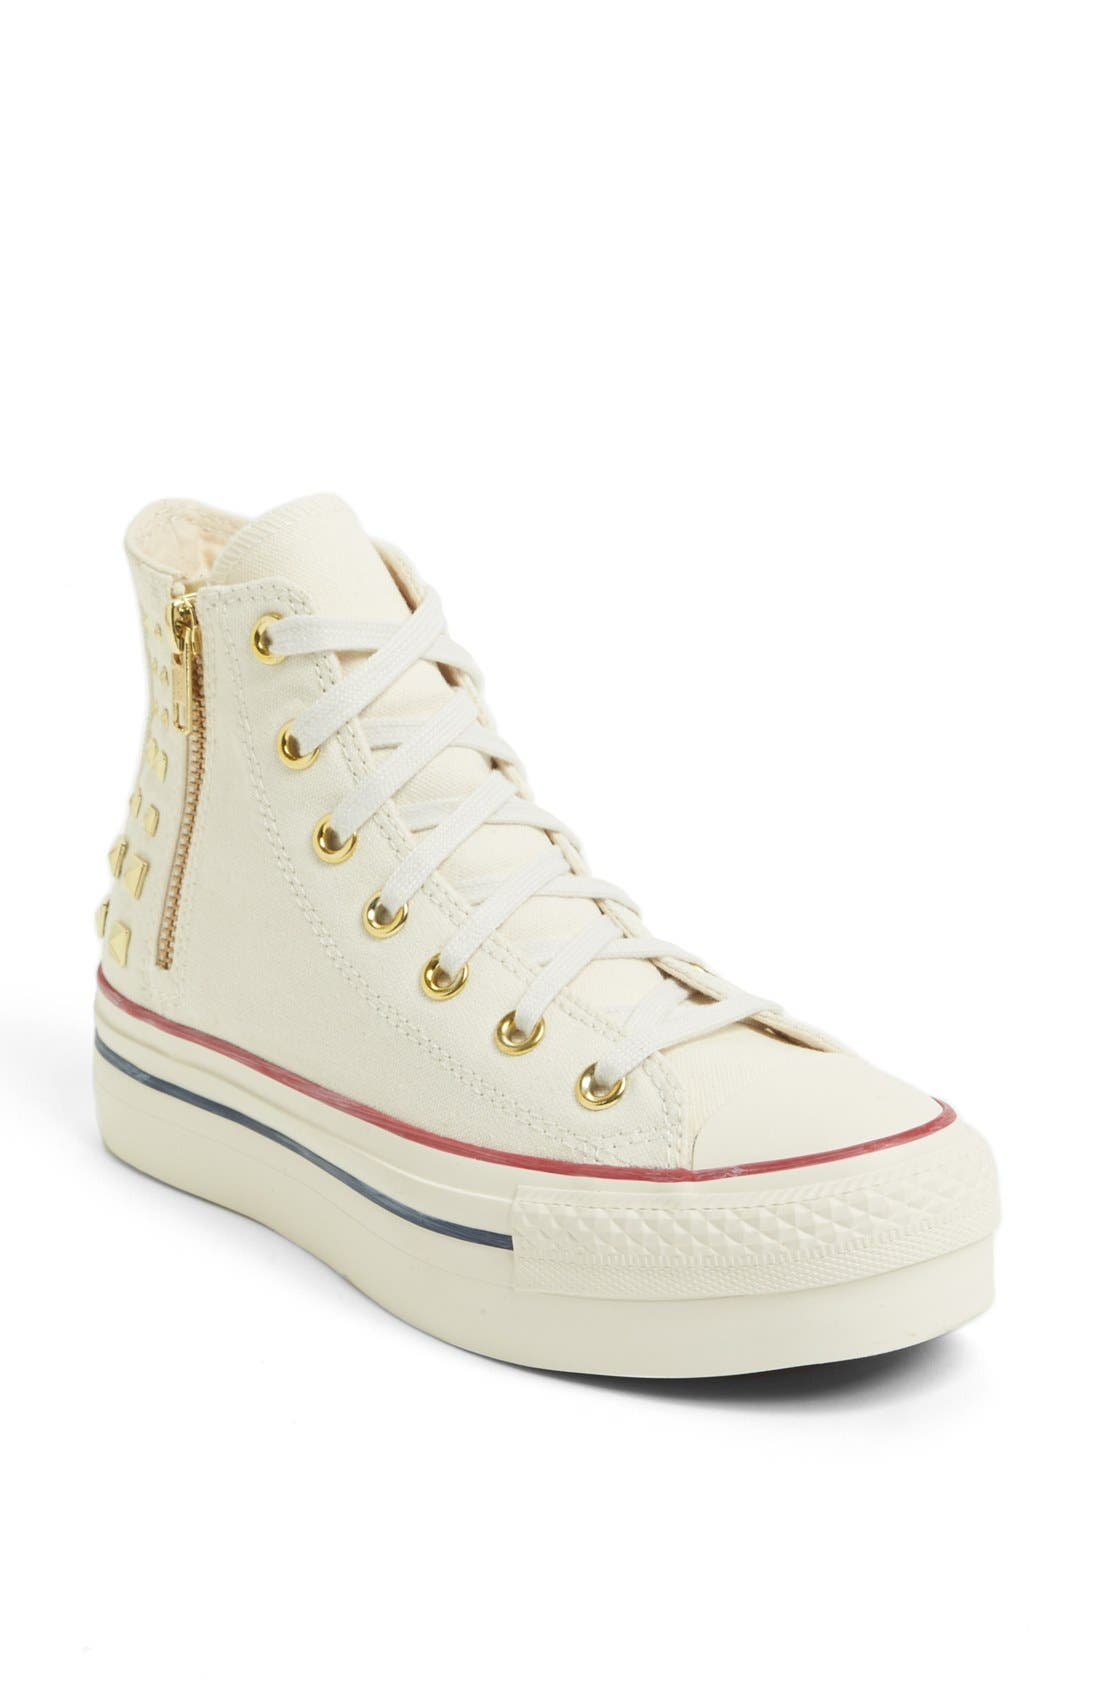 converse chuck taylor platform sneakers womens